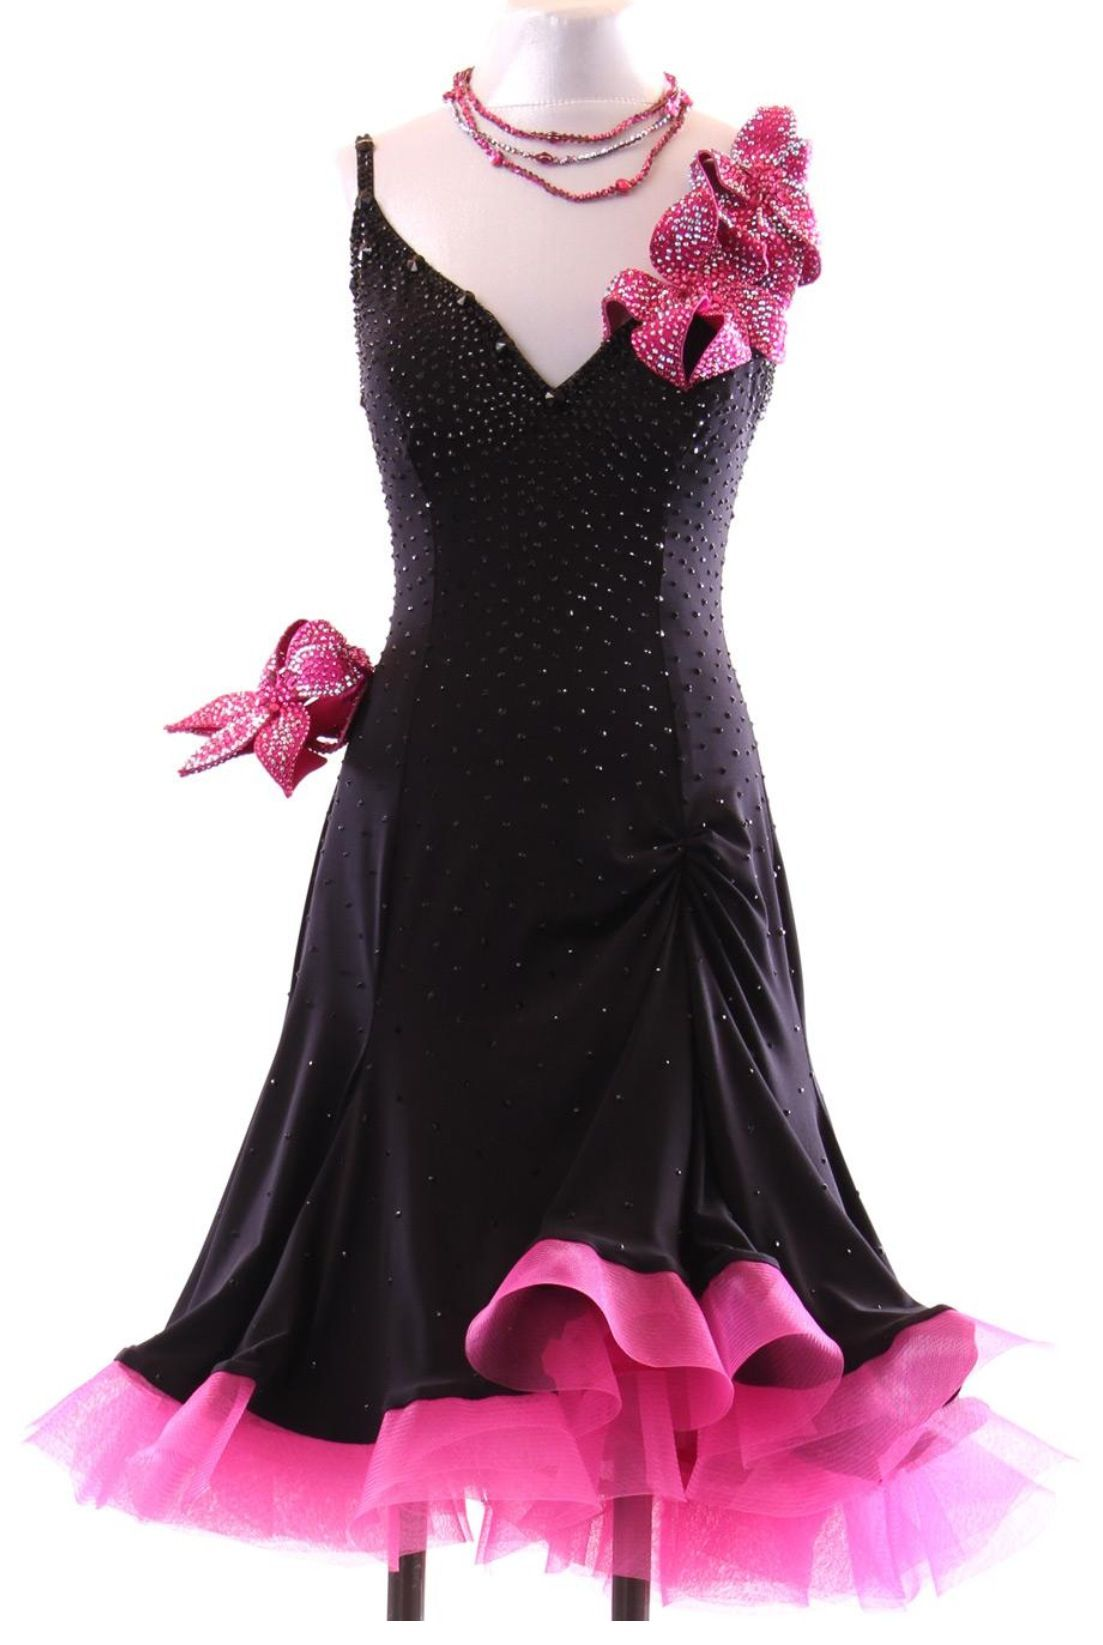 Pin by g c on costumes pinterest ballroom dress